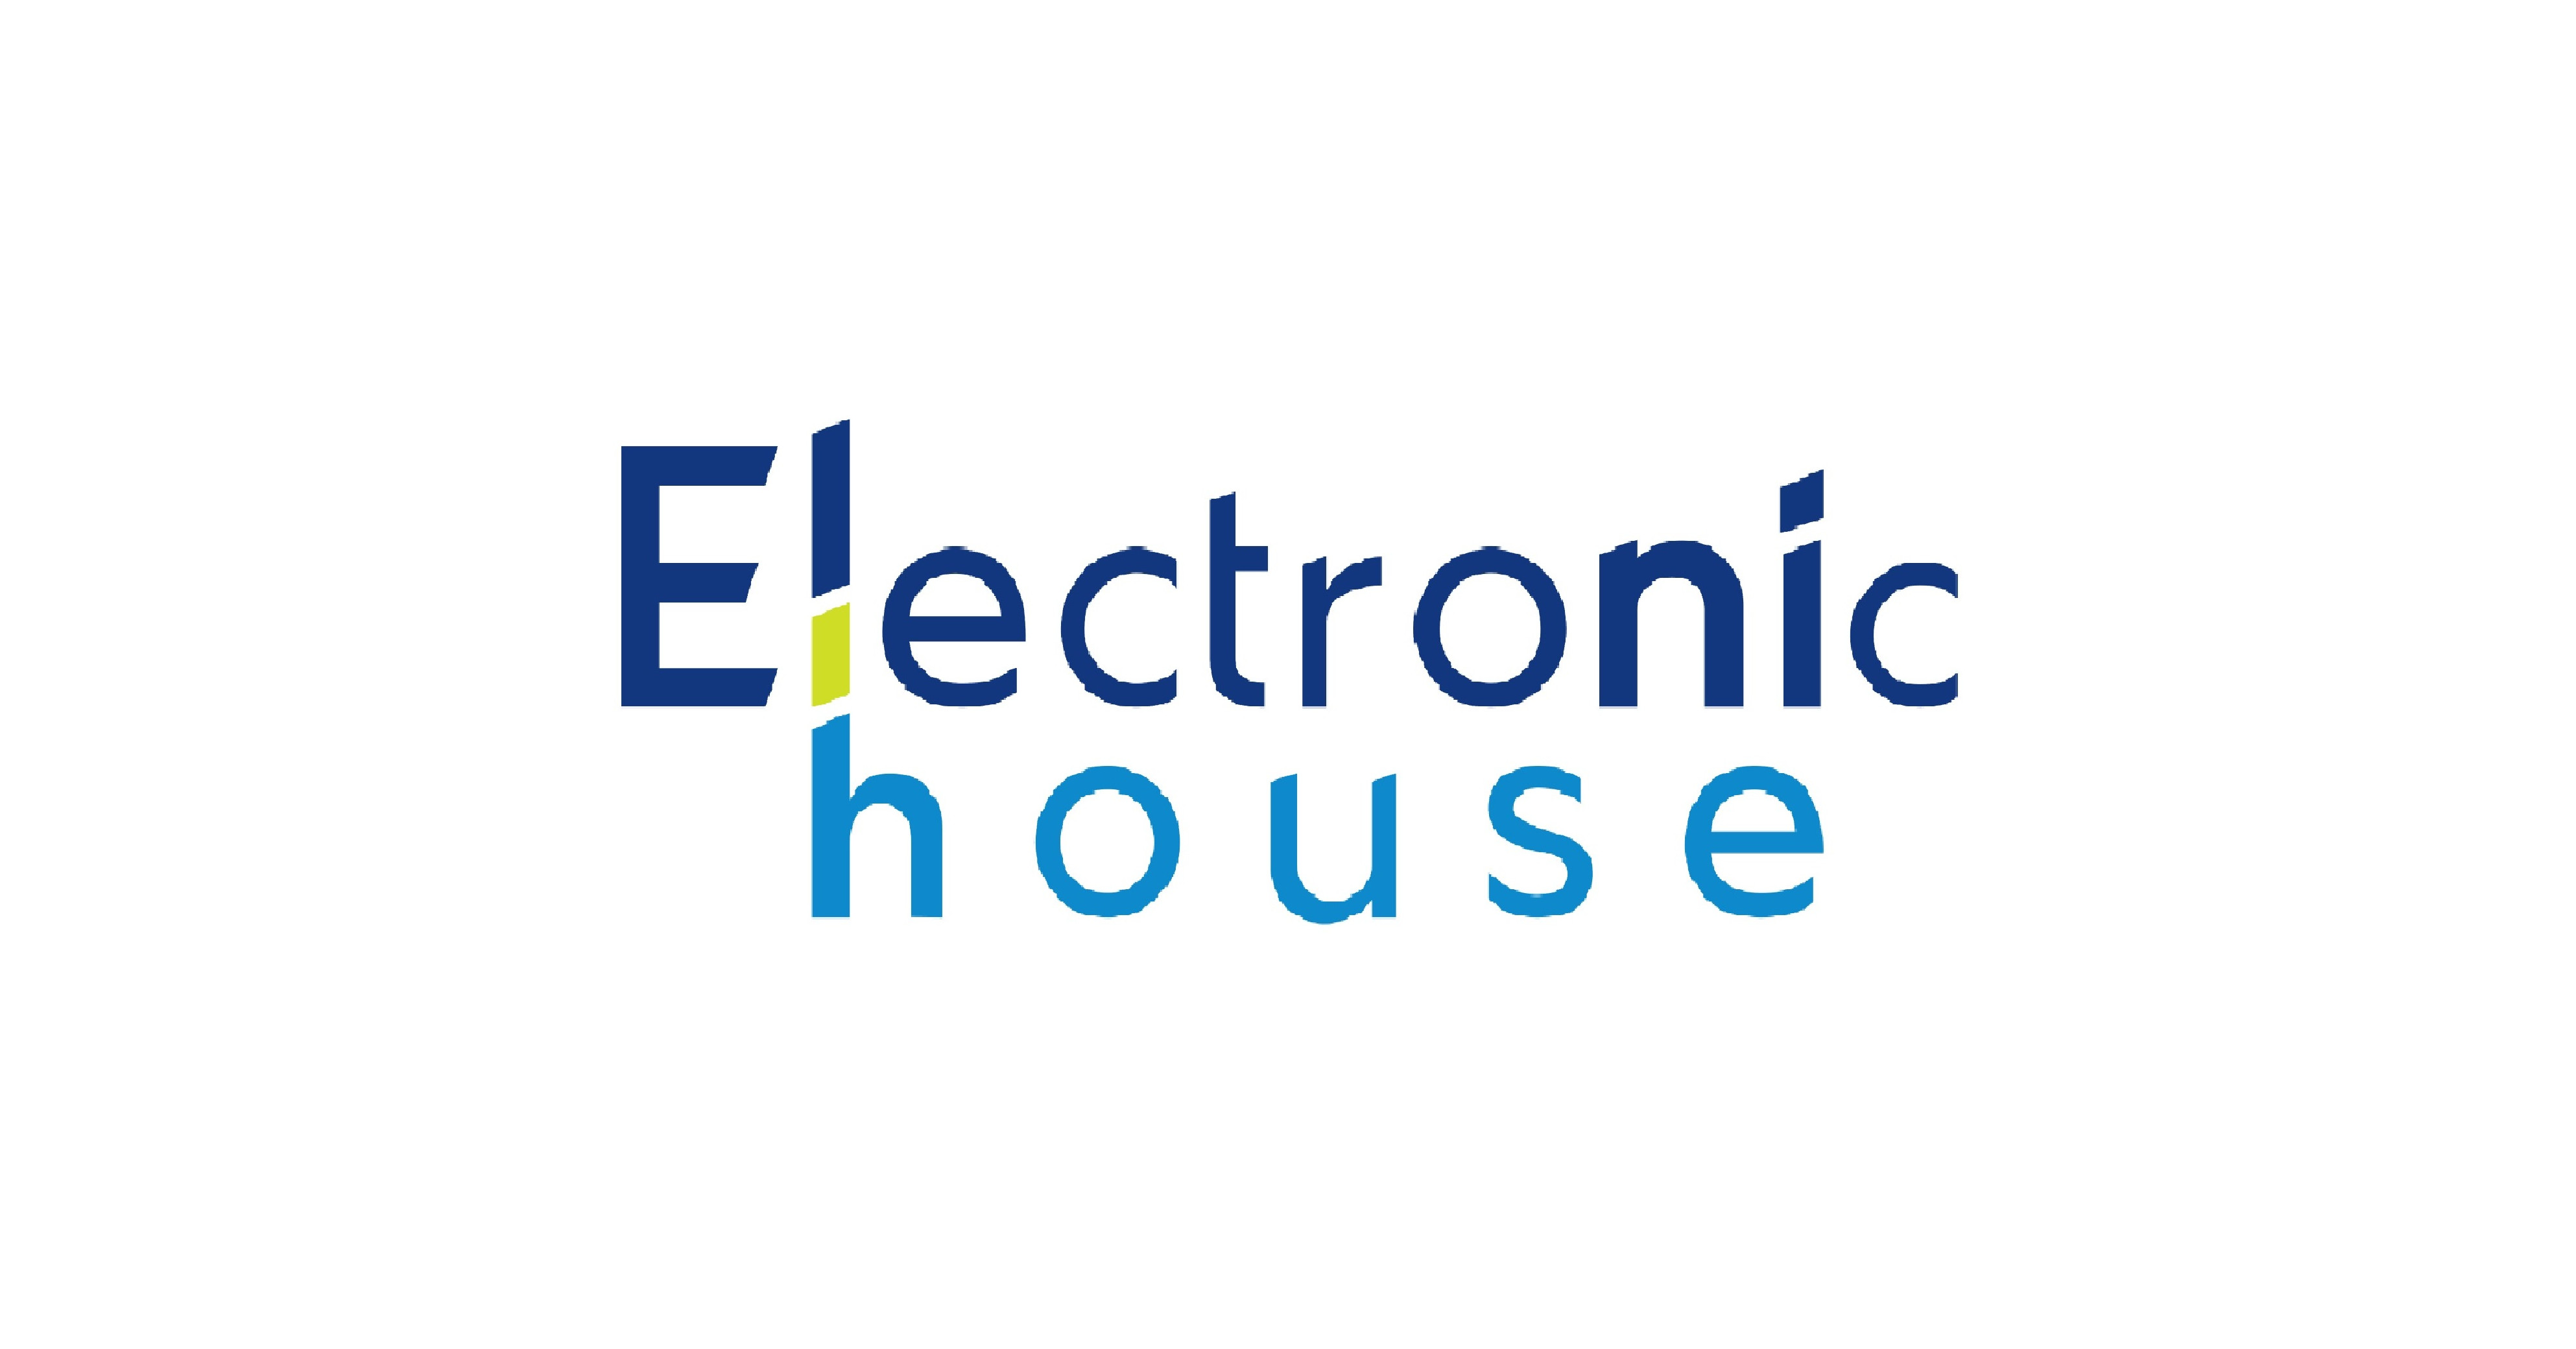 صورة Job: Customer Service Representative at Electronic House in Cairo, Egypt